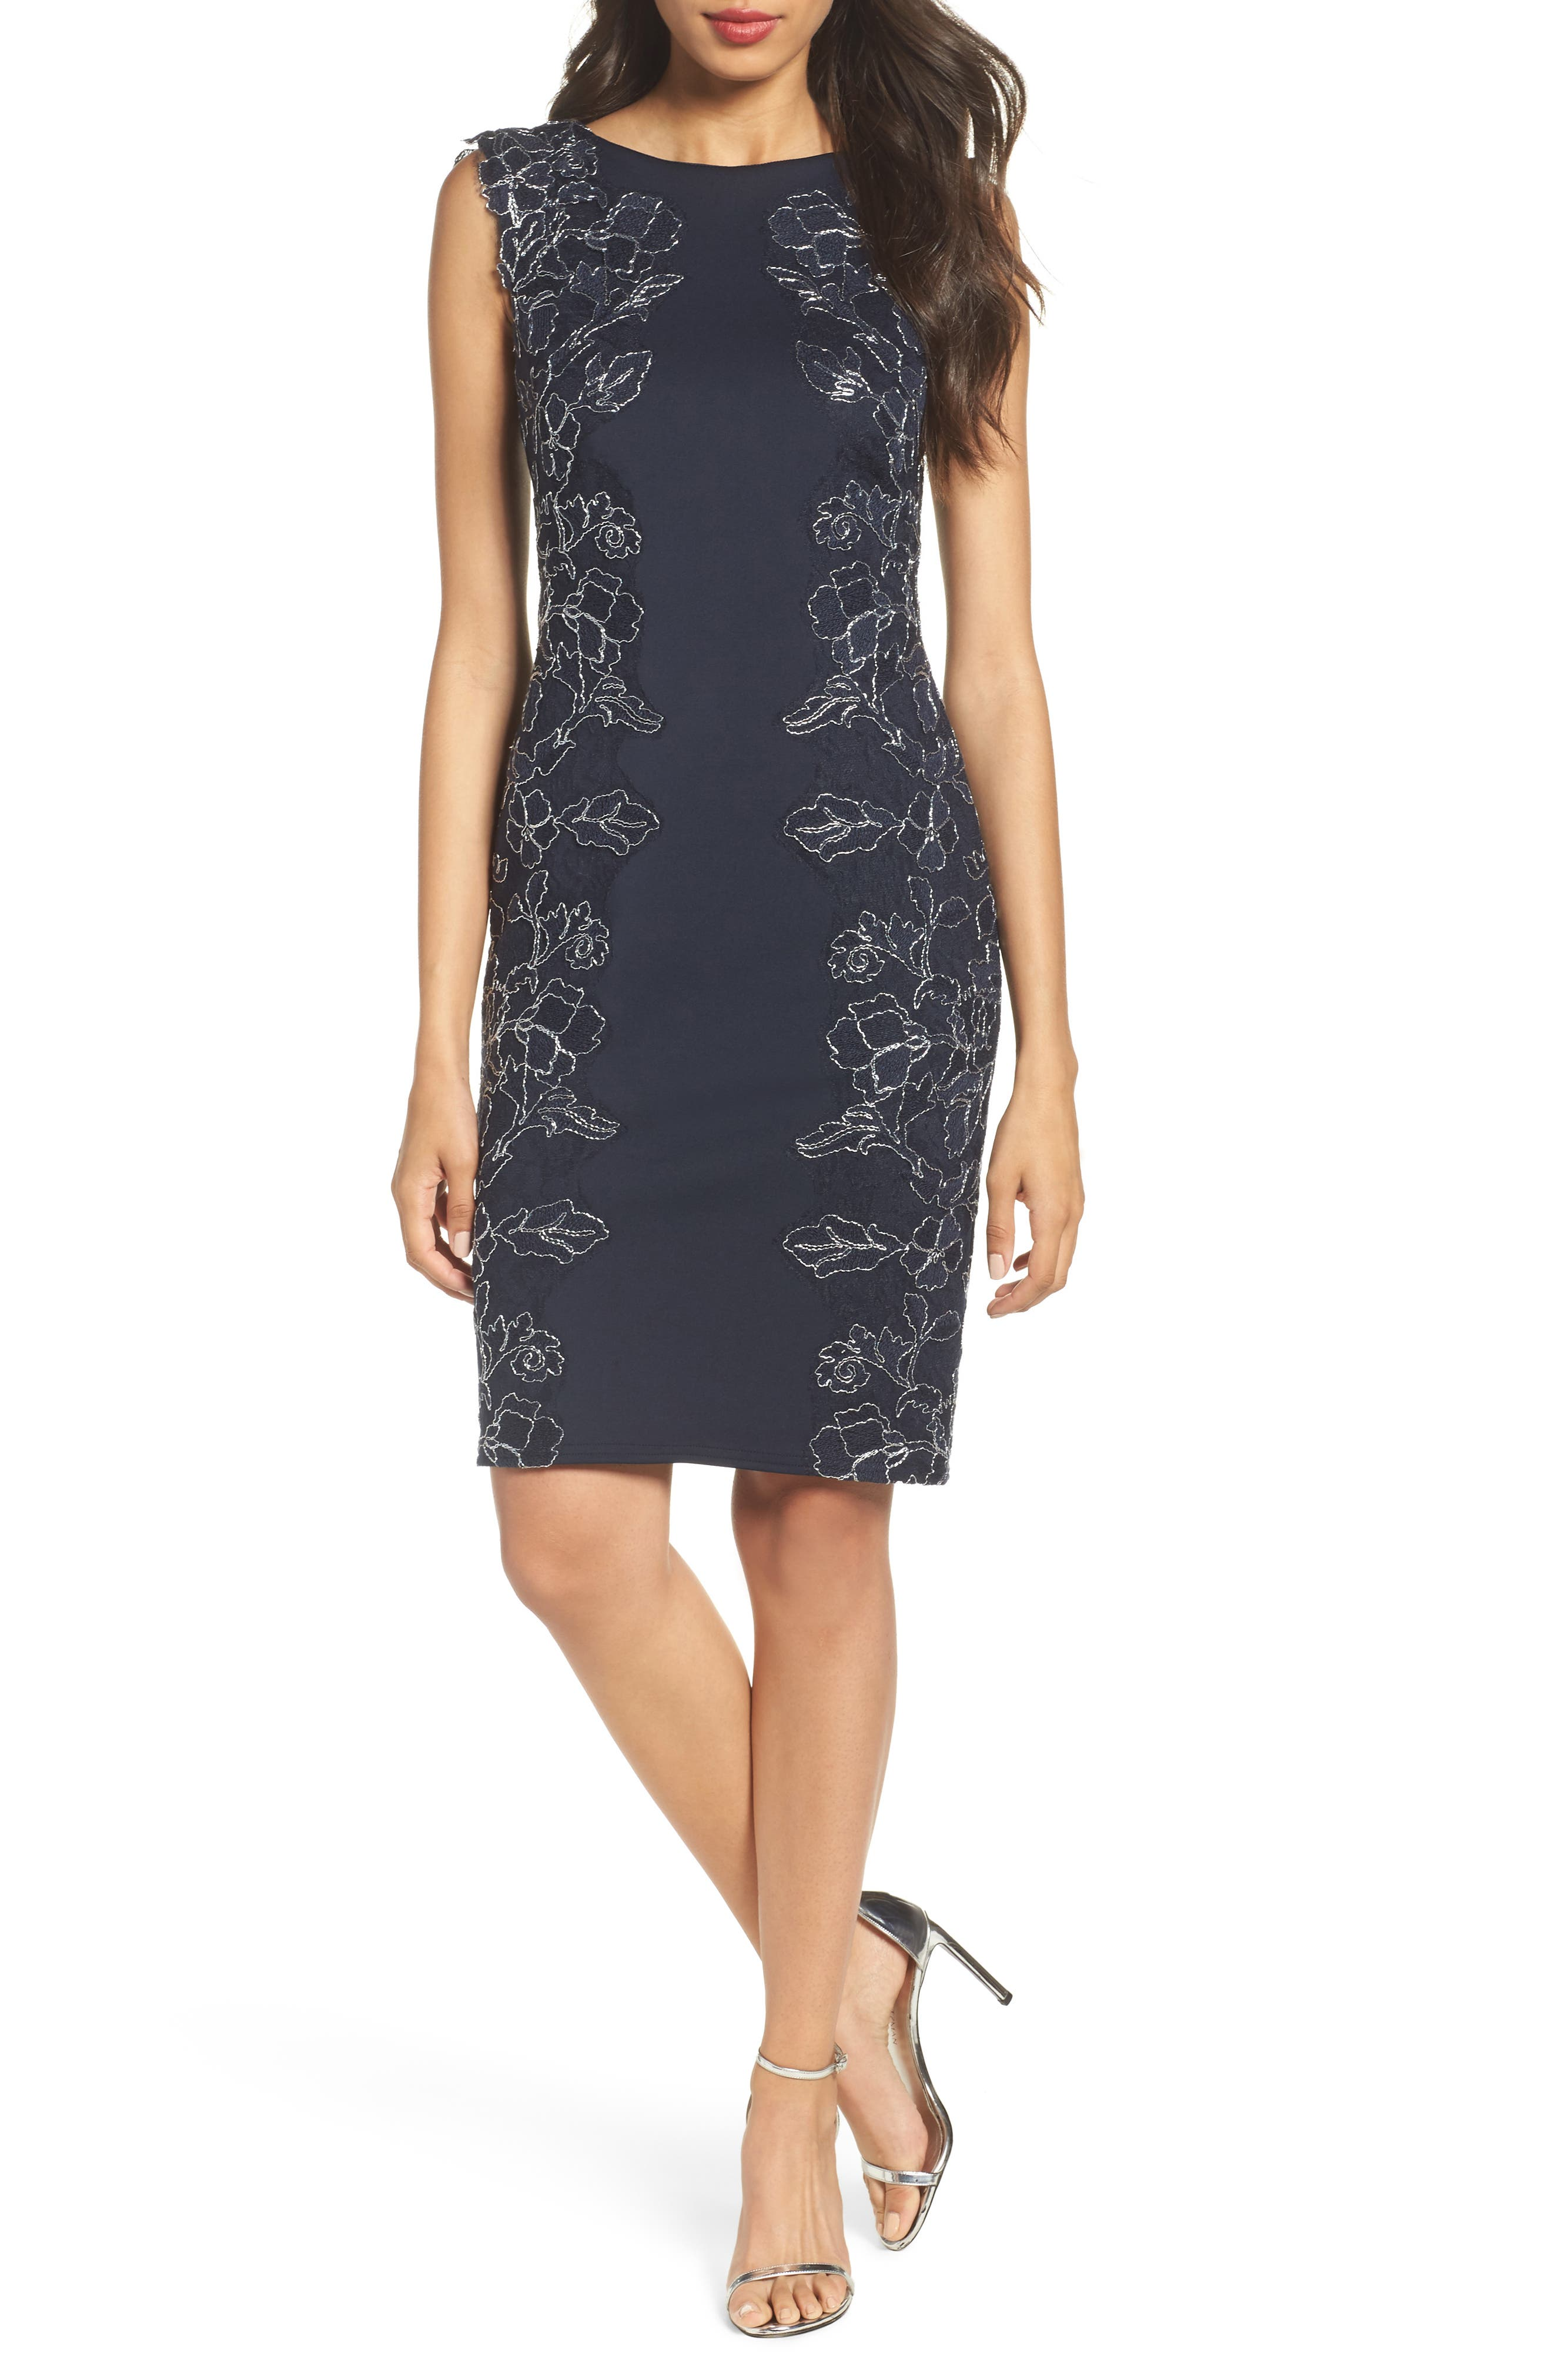 Embroidered Neoprene Sheath Dress,                             Main thumbnail 1, color,                             Navy/ Silver